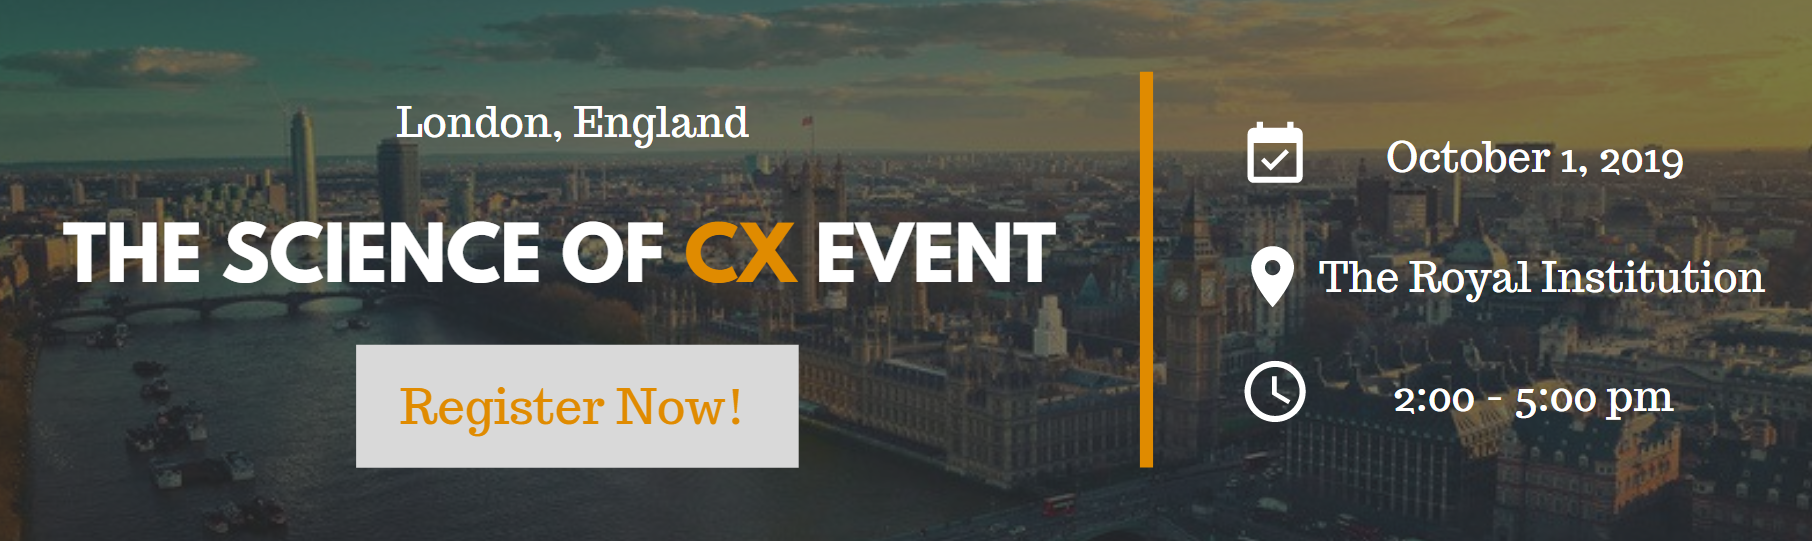 customer experience event